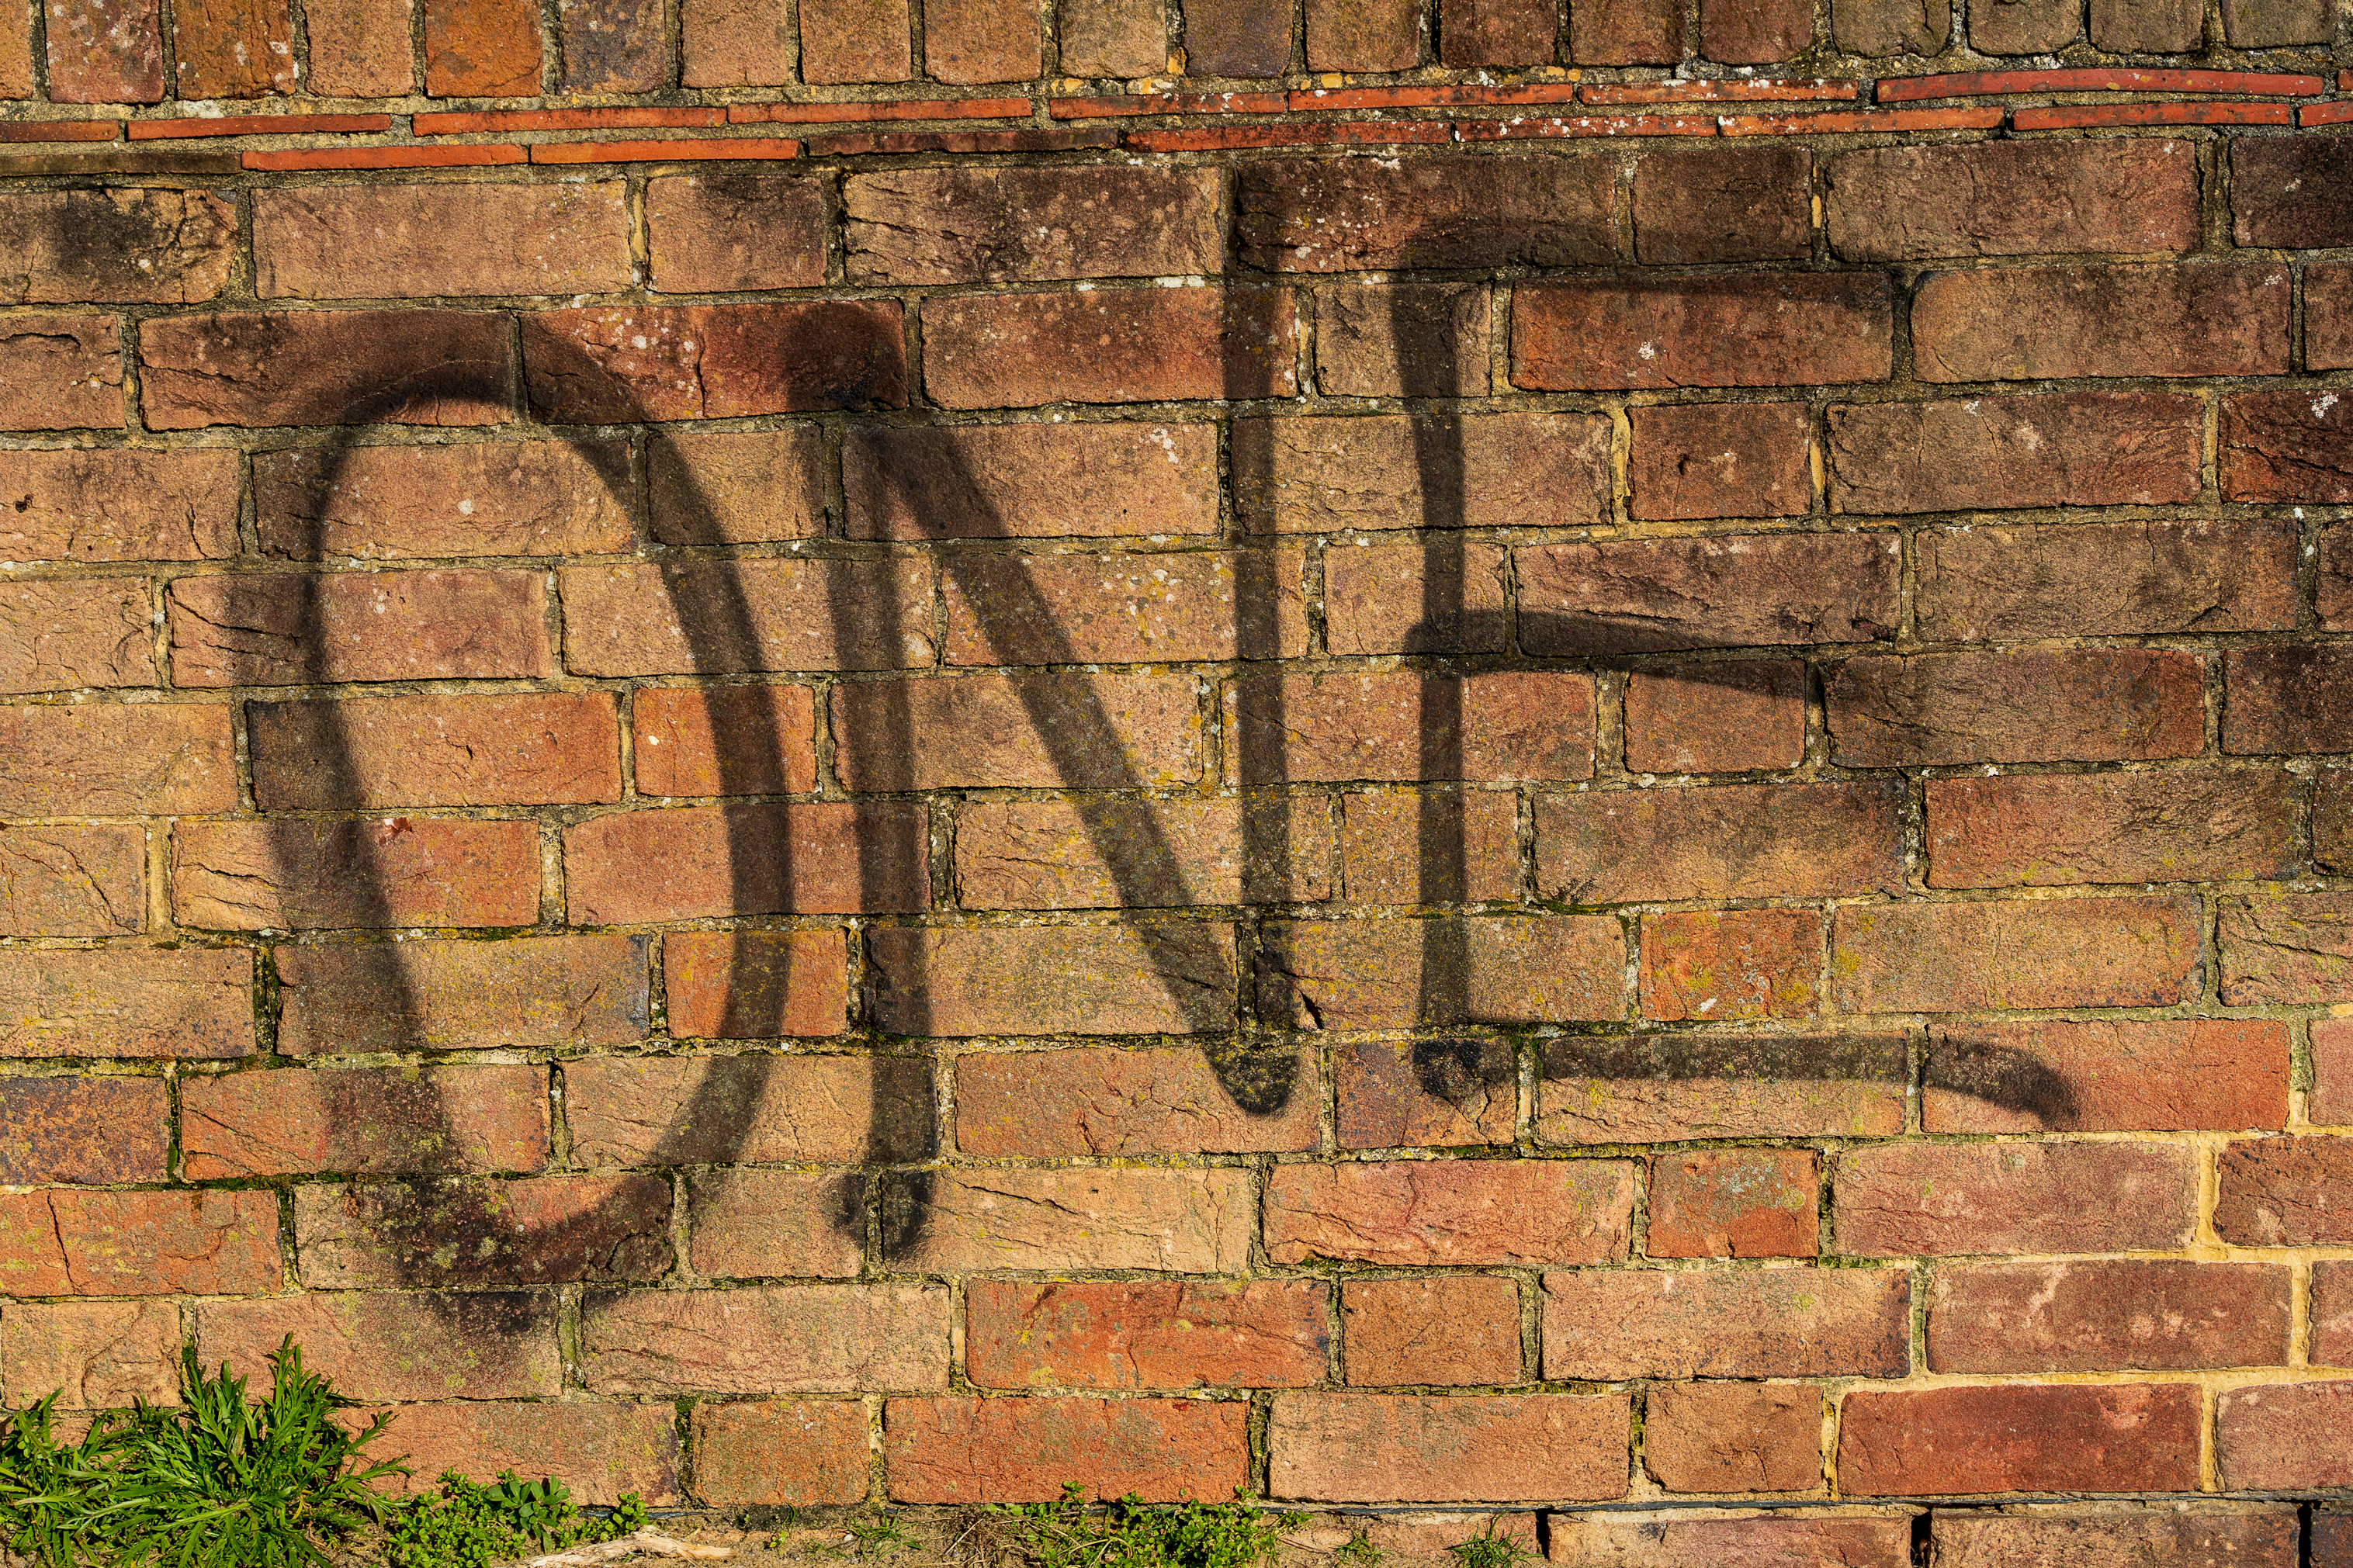 The word one, spray painted onto a wall.